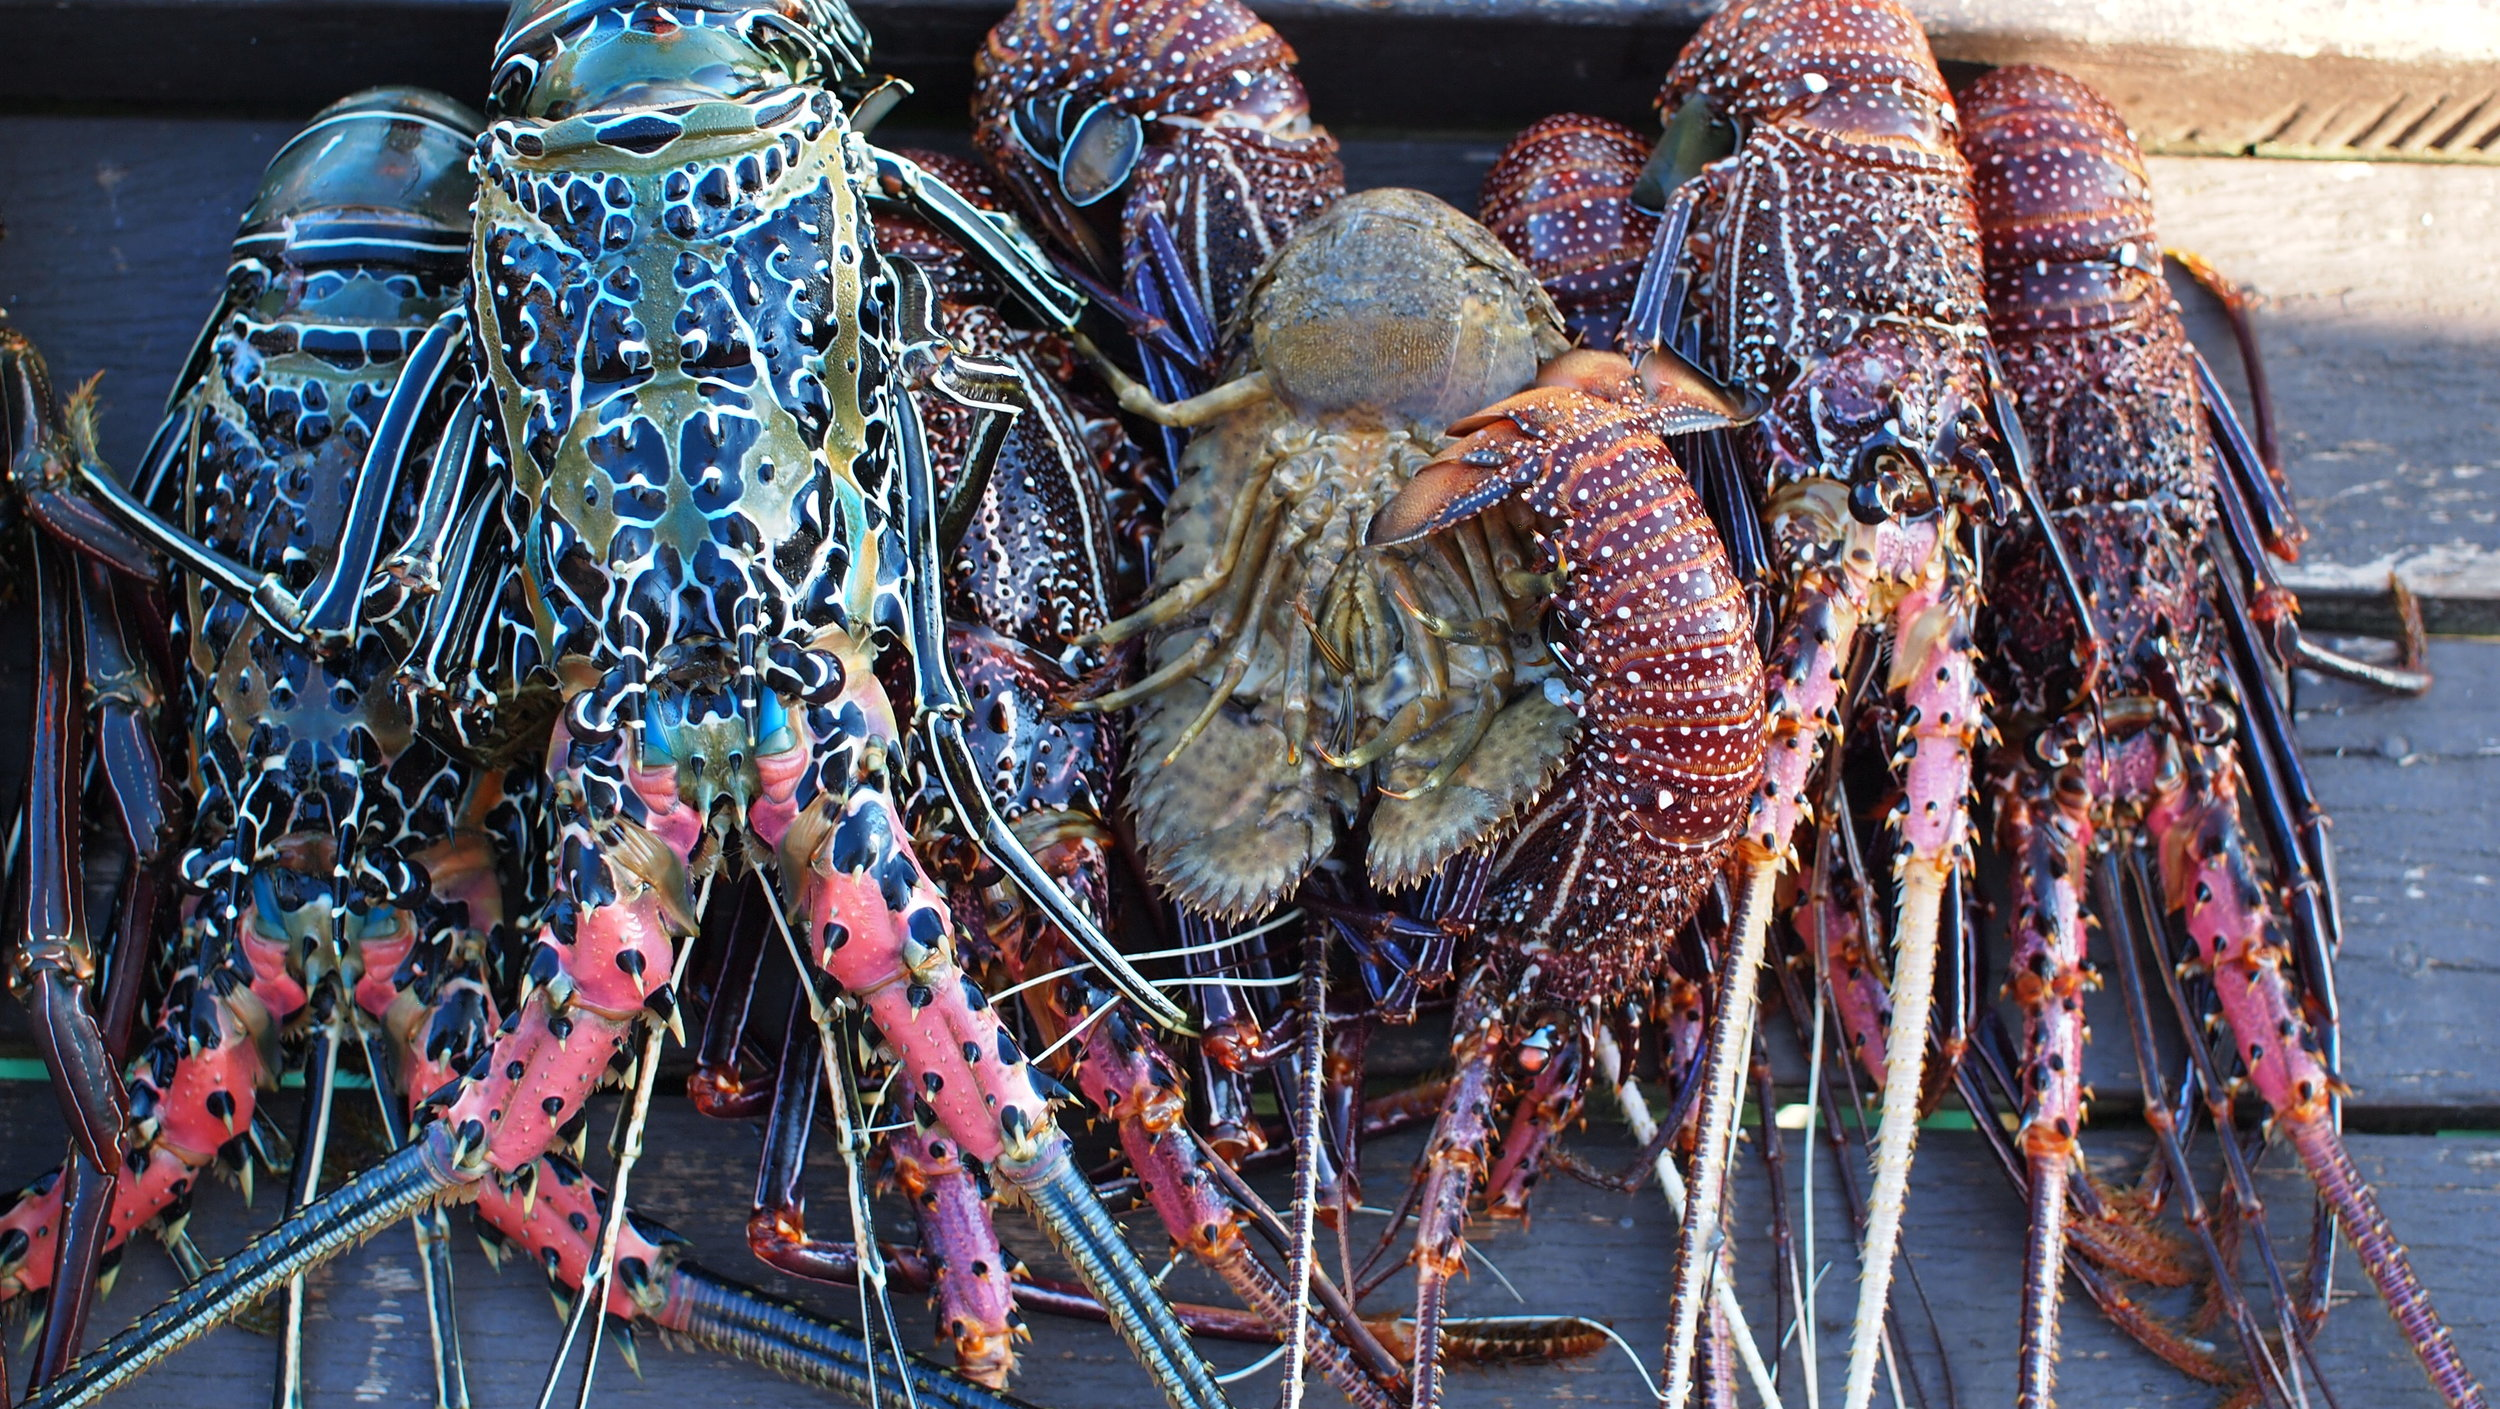 Colourful crays of the Solomon Islands (image by Jacqui Gibson).